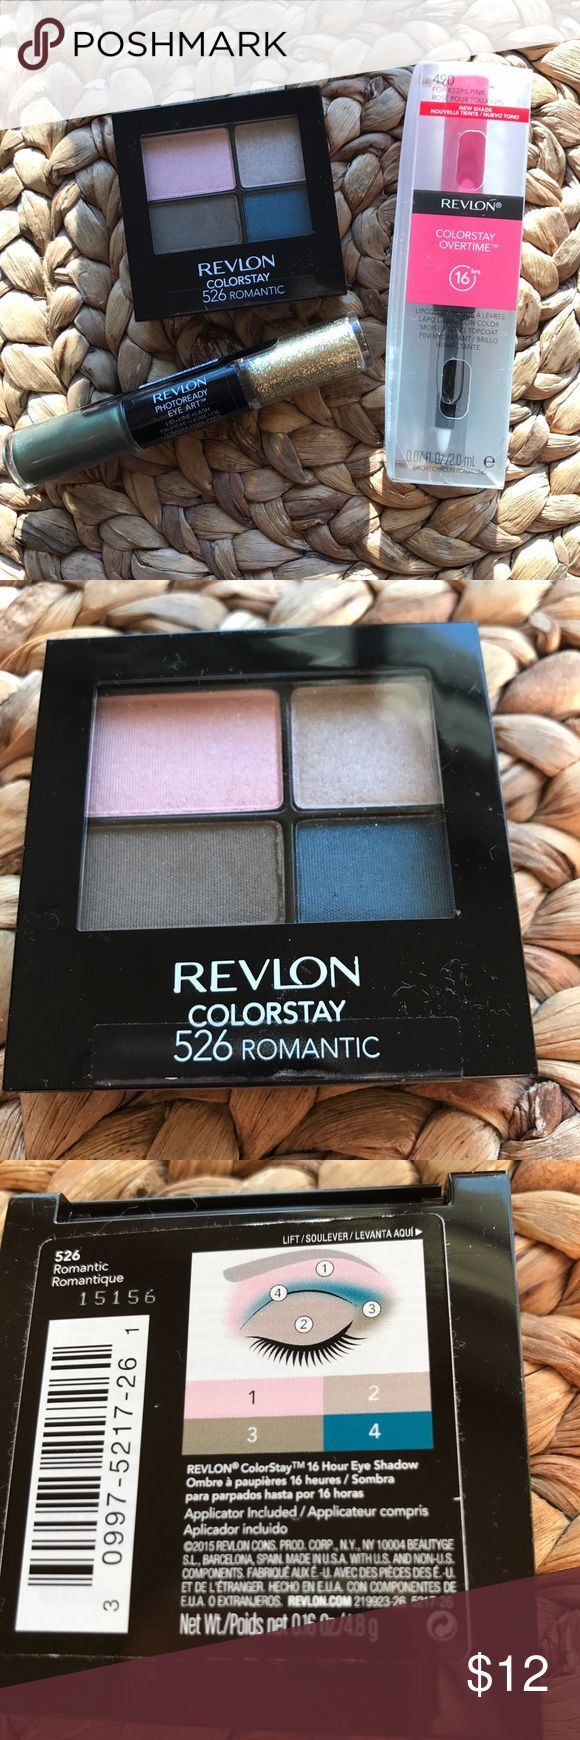 🆕 Revlon Bundle✨ New, all unopened Revlon set / Includes: Colorstay eyeshadow quad in 526 Romantic, Colorstay 16hr Overtime lip color & gloss in 490 For Keeps and Photoready Eye Art, lid/line/lash in 080 Dessert Dazzle✨ No Trades Revlon Makeup